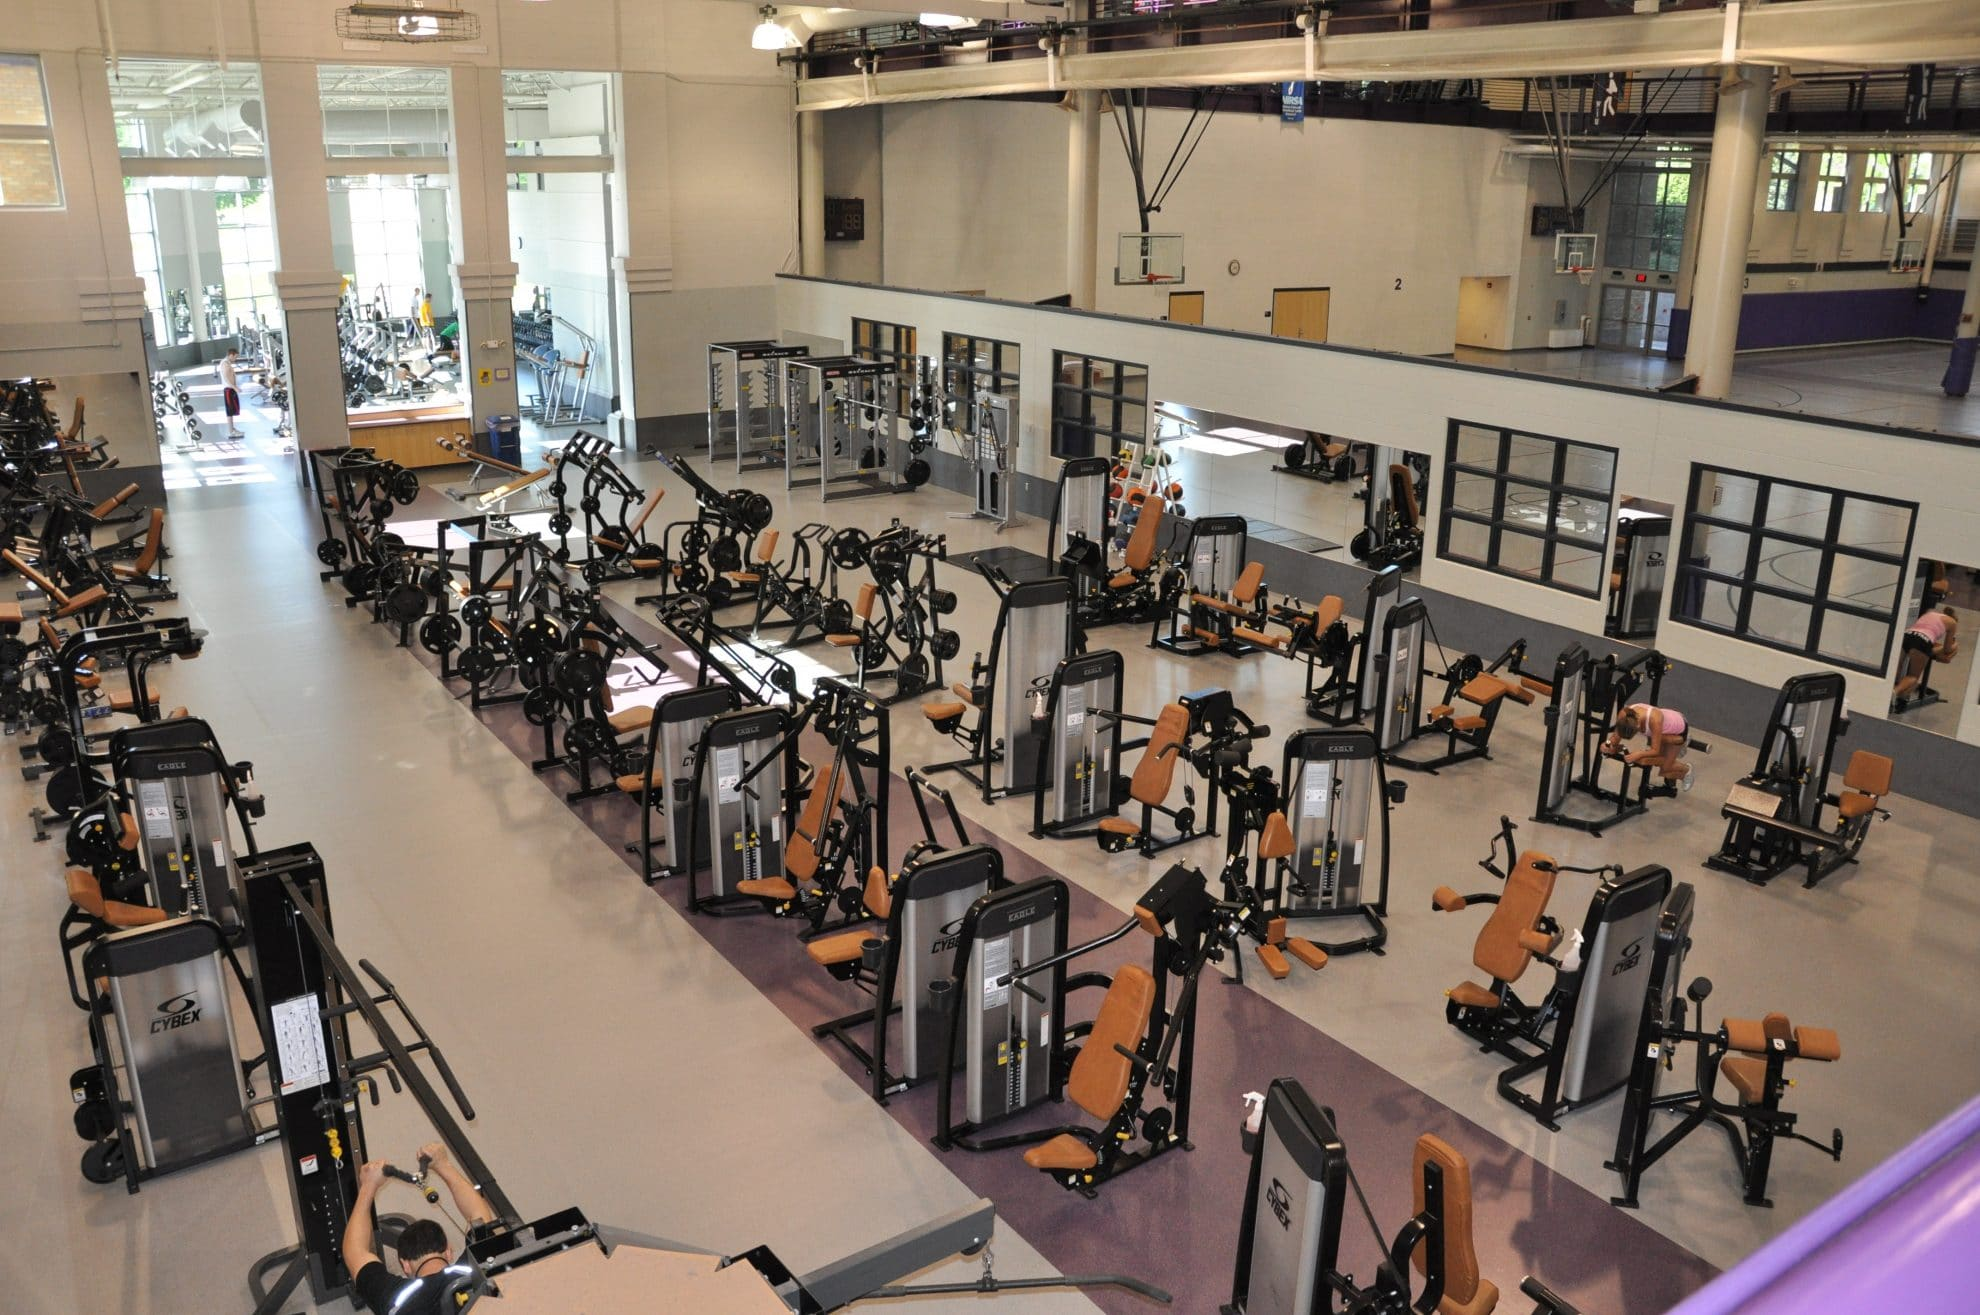 Upper view of workout room.